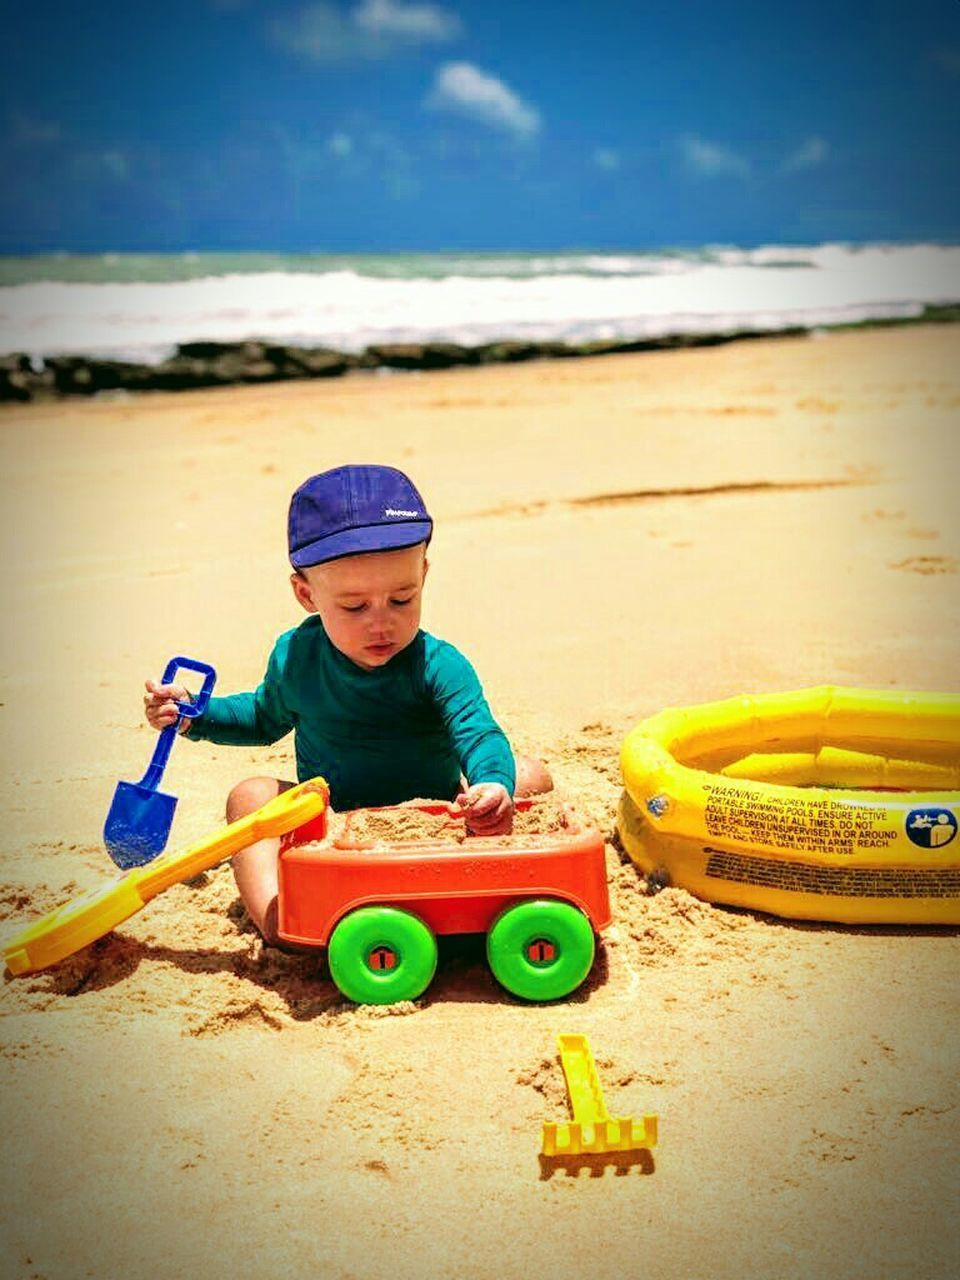 beach, sand, childhood, child, toy, sand pail and shovel, boys, one boy only, males, children only, one person, cute, playing, fun, full length, sea, summer, people, leisure activity, vacations, portrait, day, outdoors, water, sky